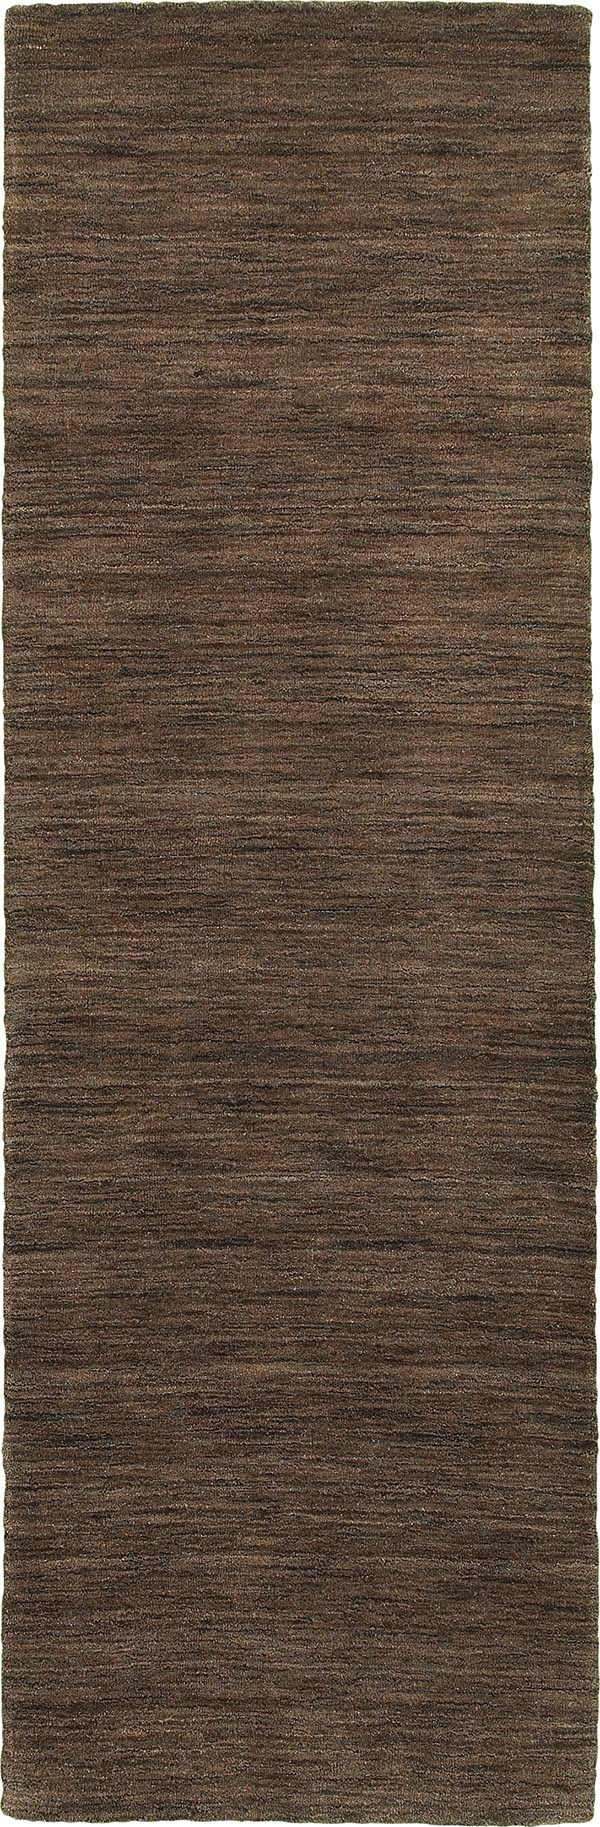 Brown (27109) Casual Area Rug